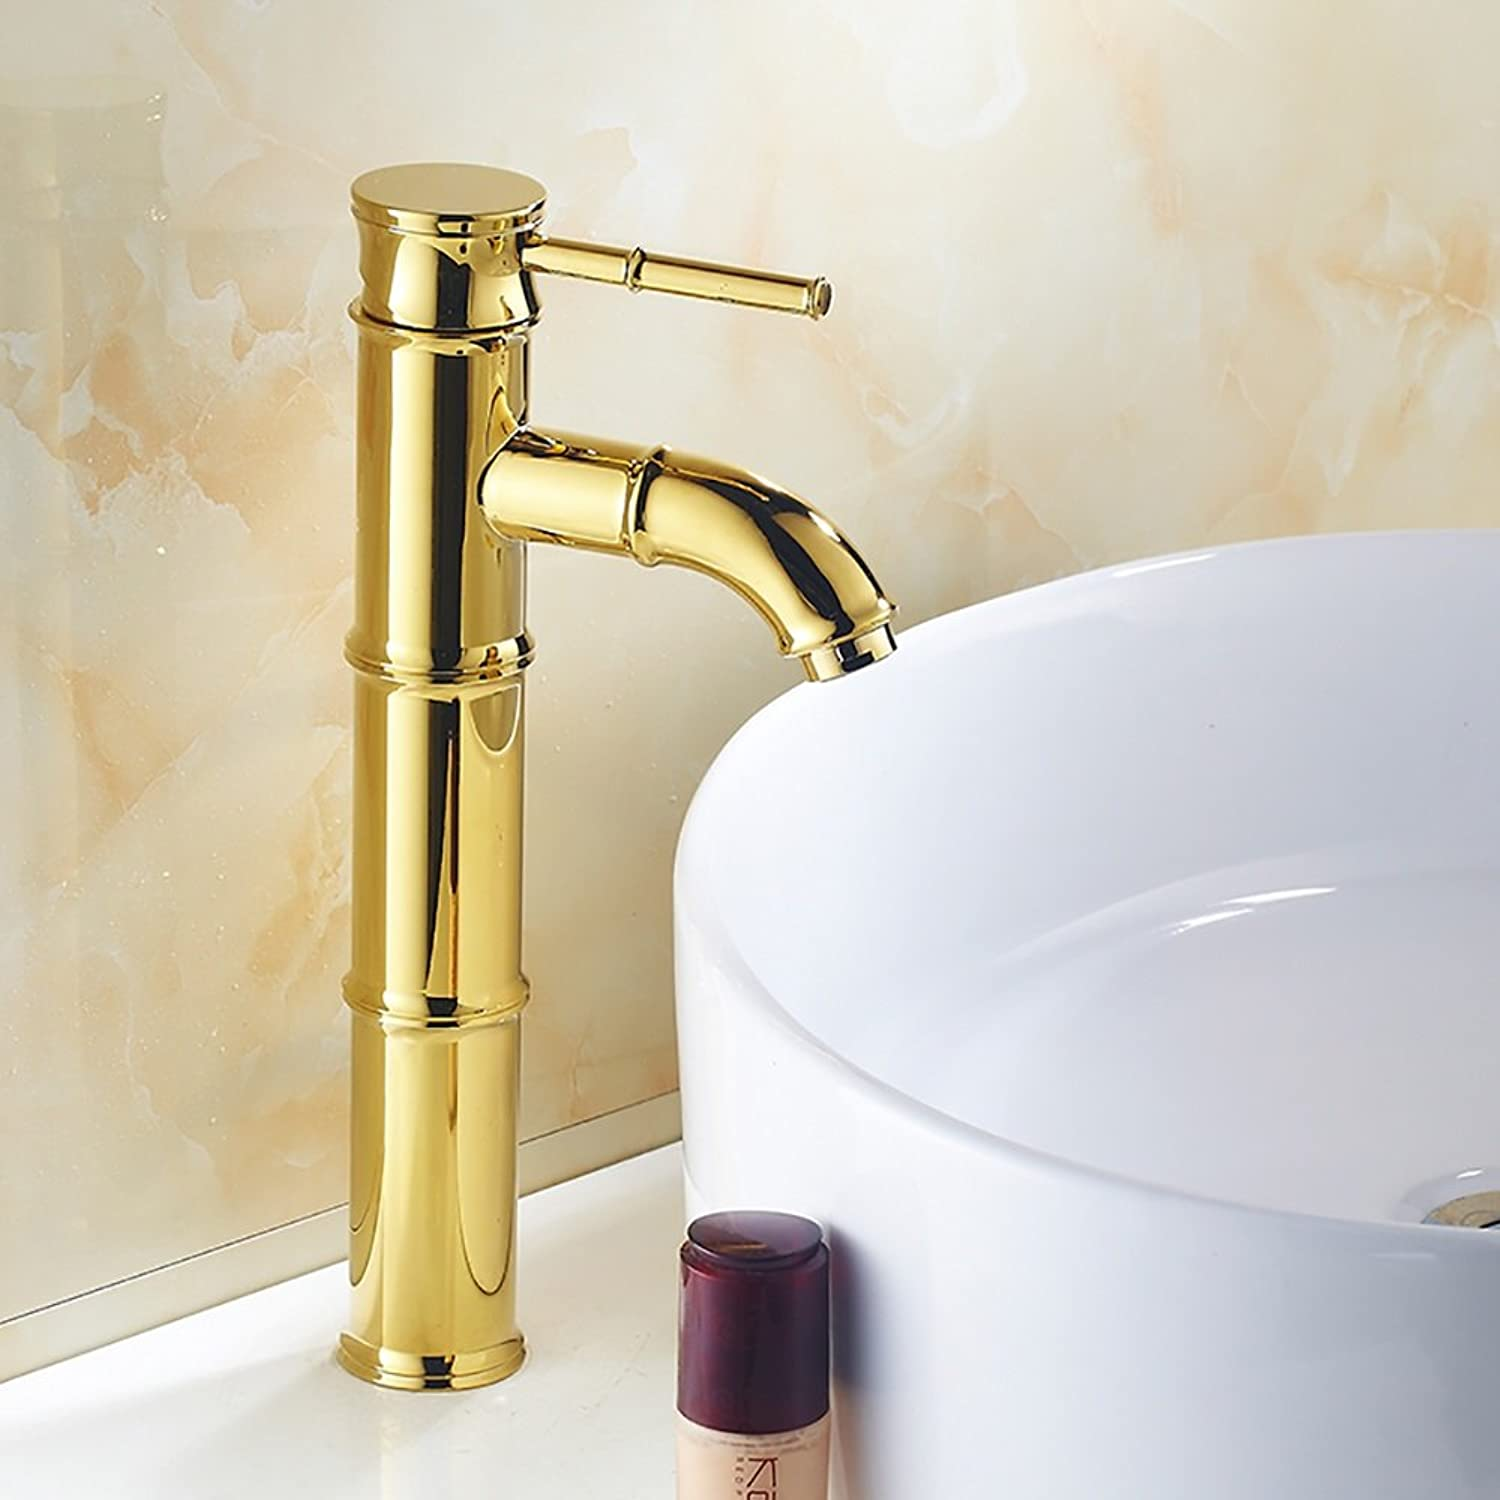 MEILING Plating gold Elbow Imitation Bamboo Hot And Cold Water Faucet